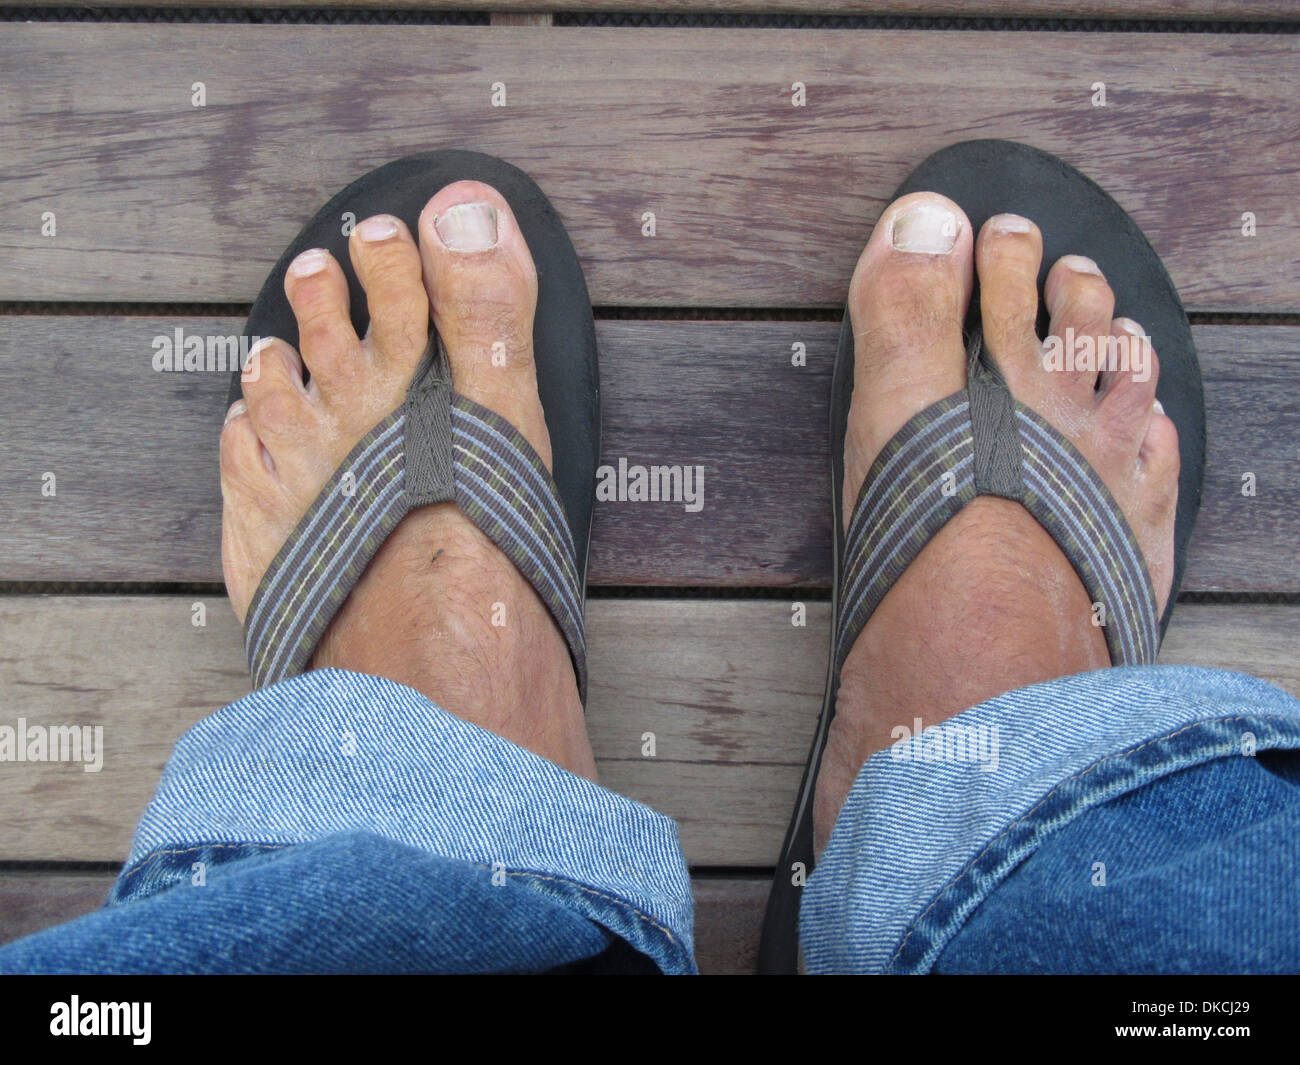 2126dc3660d292 A pair of bare feet in sandals or flip flops. A mosquito is biting the